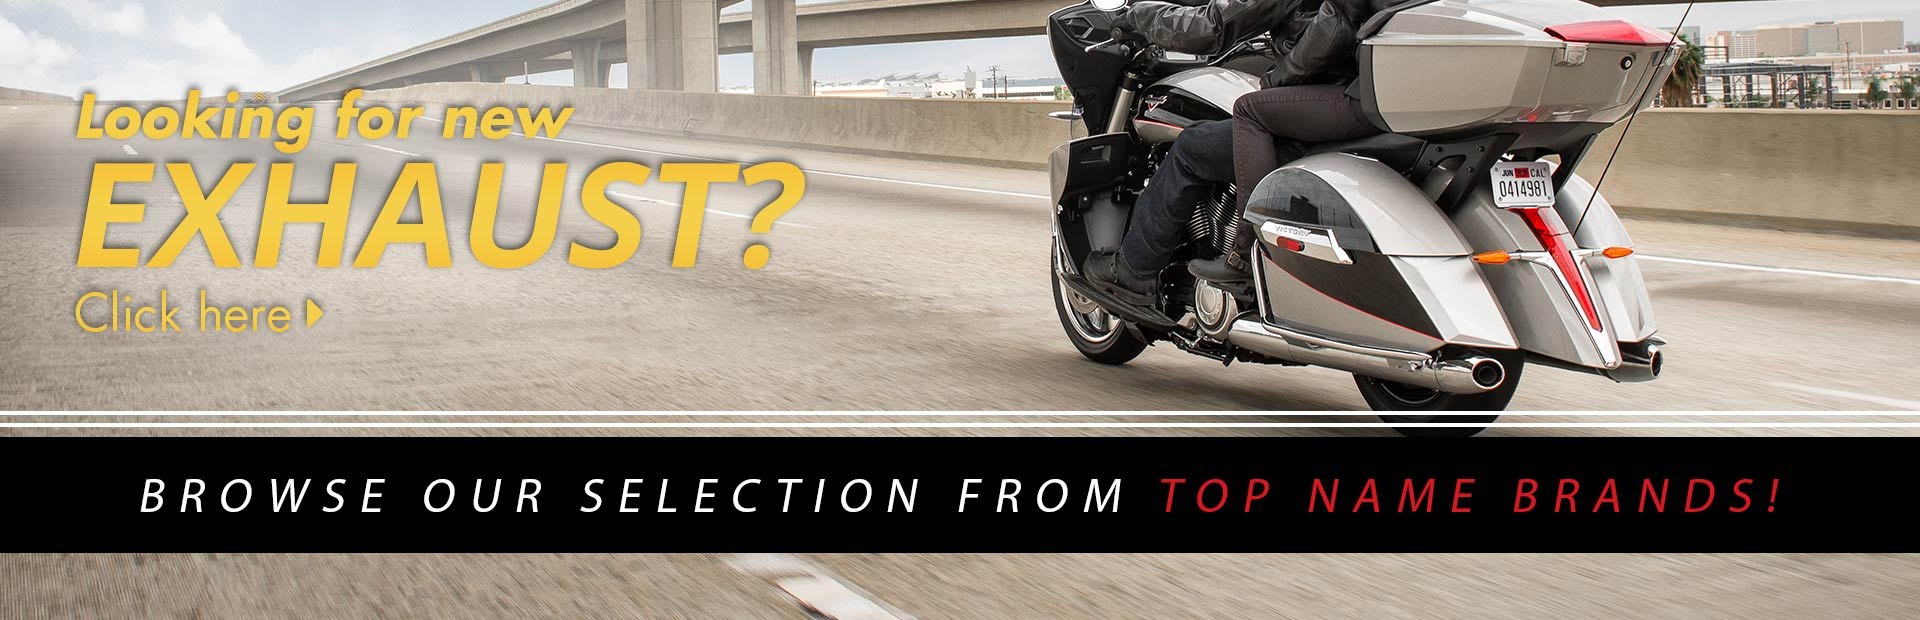 Click here to browse our exhaust selection from top name brands!